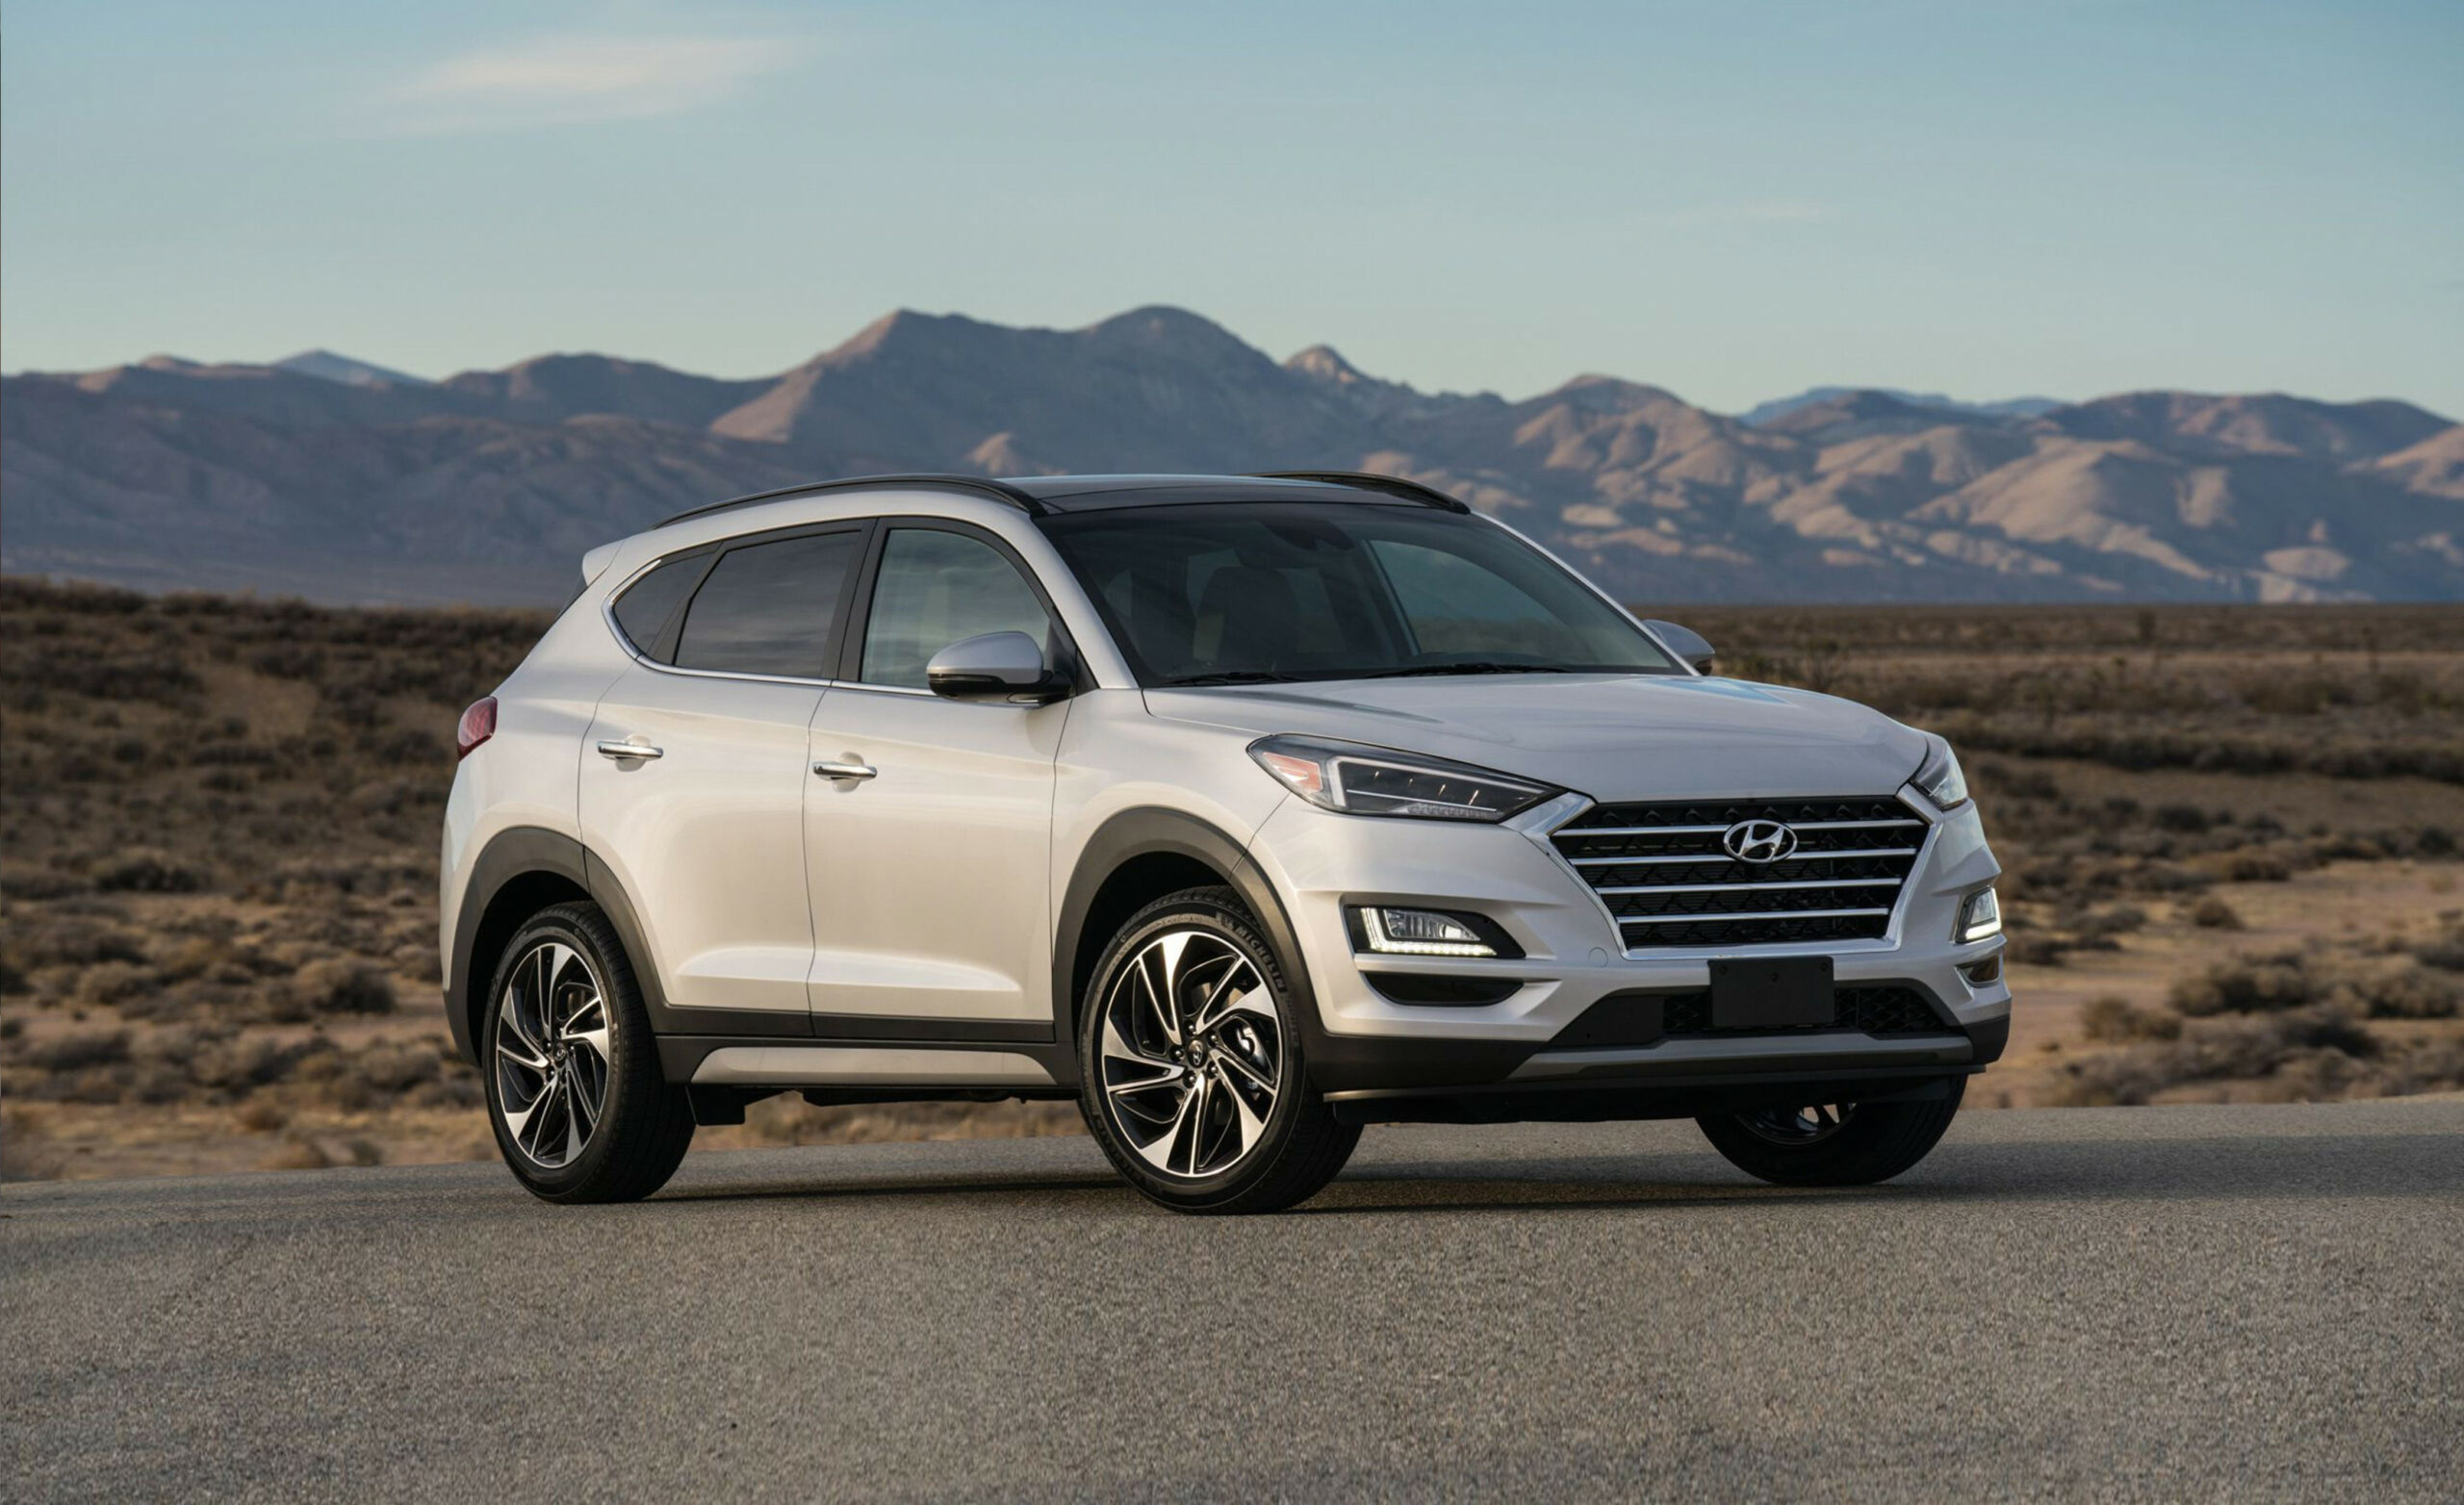 8 Hyundai Tucson Review, Pricing, and Specs